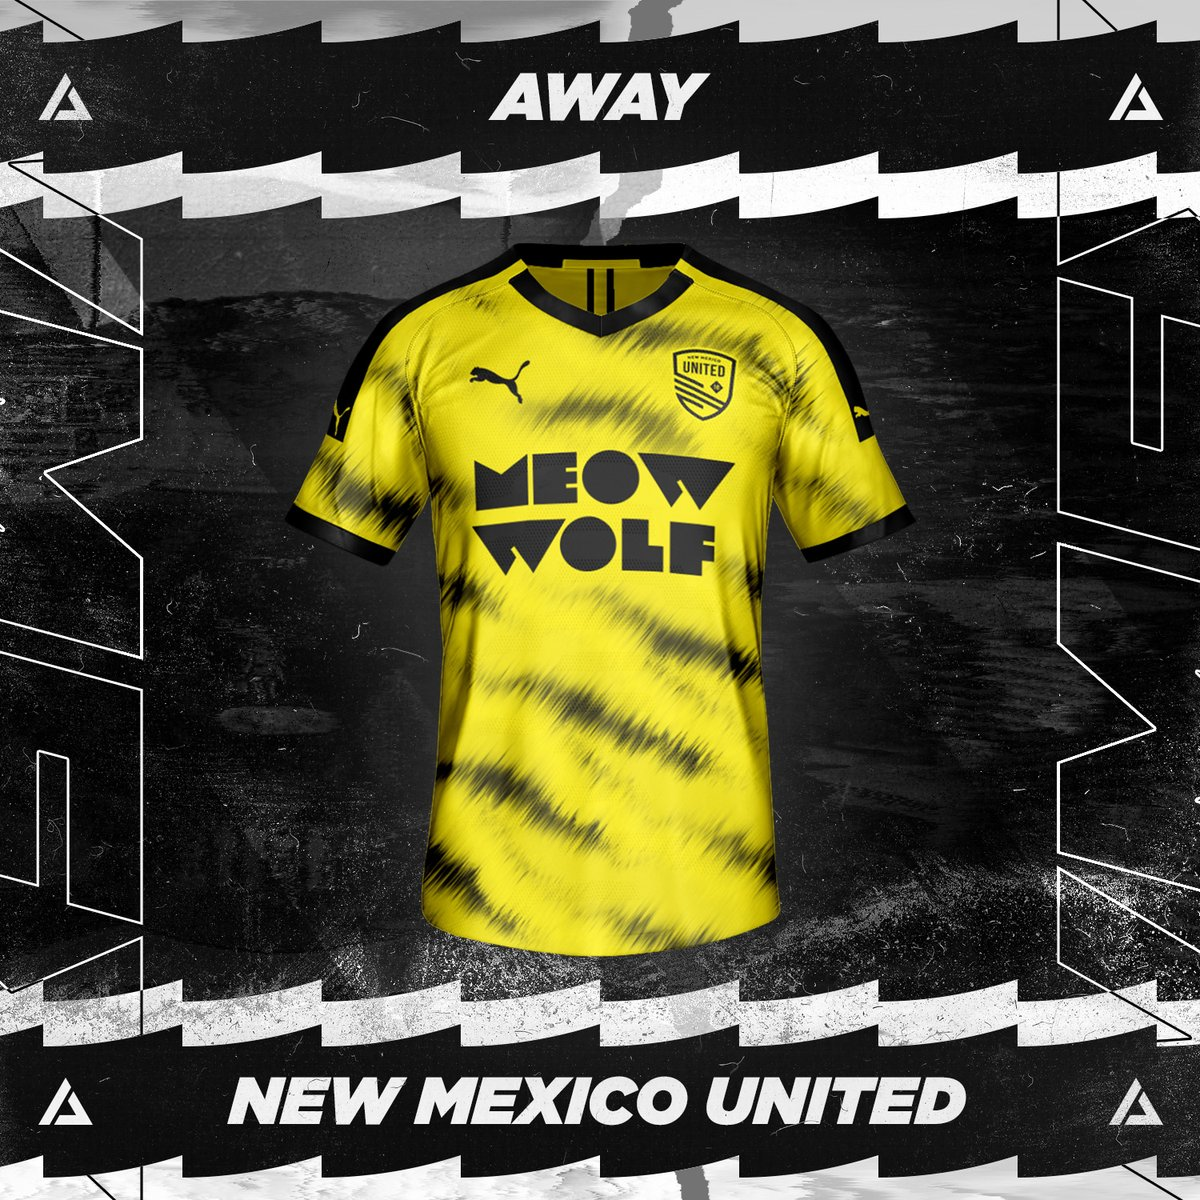 New Mexico United Away Kit Concept. ⁠ Rate 1-10! ⁠ #JPereira #NewMexicoUnited #NewMexico #NM #NMUnited #SomosUnidos #SomosFamilia #NMProud #NMStrong #NMTrue #Futbol #FantasyKit #ConceptKit #KitDesign #Soccer #Football #Jersey #GraphicDesign #PUMA #FIFA #Kit #USA https://t.co/g48ejW1GIo